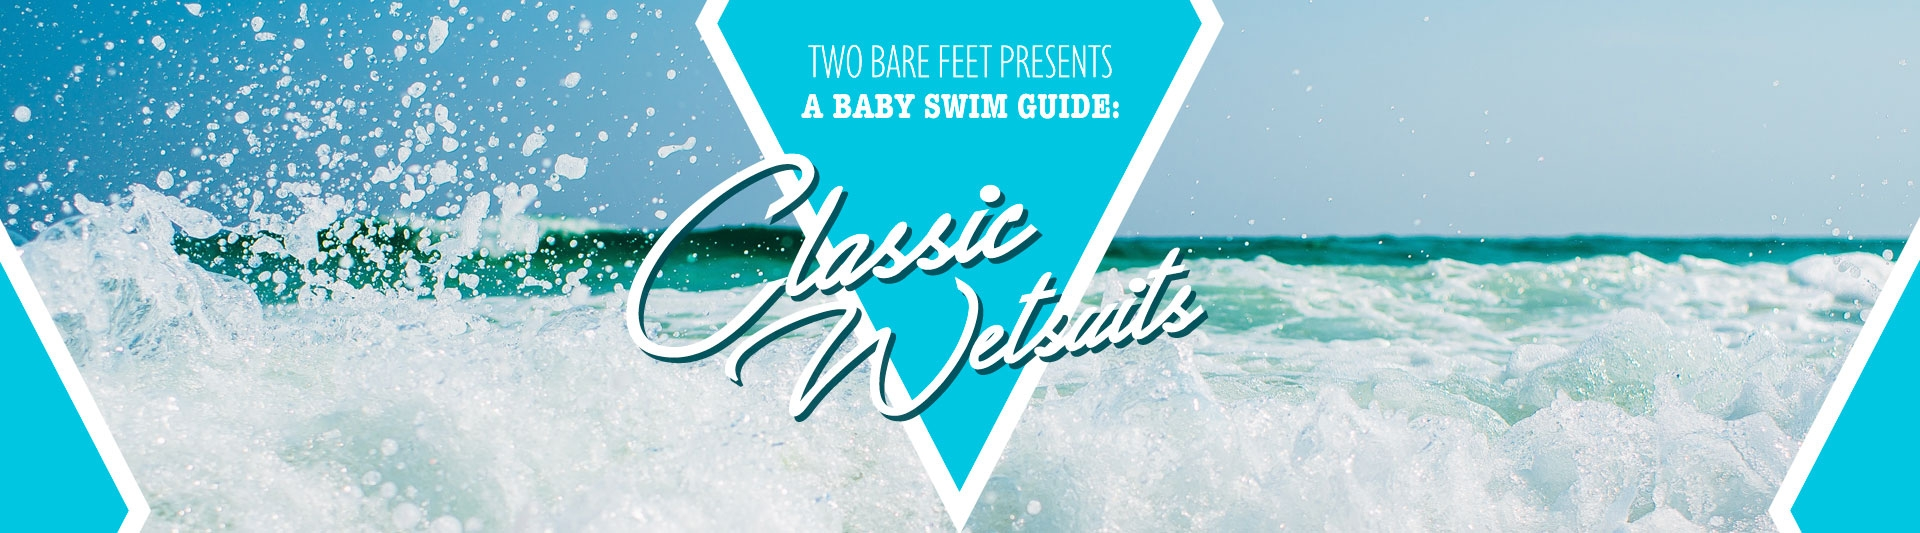 Classic Baby Wetsuit Sets banner